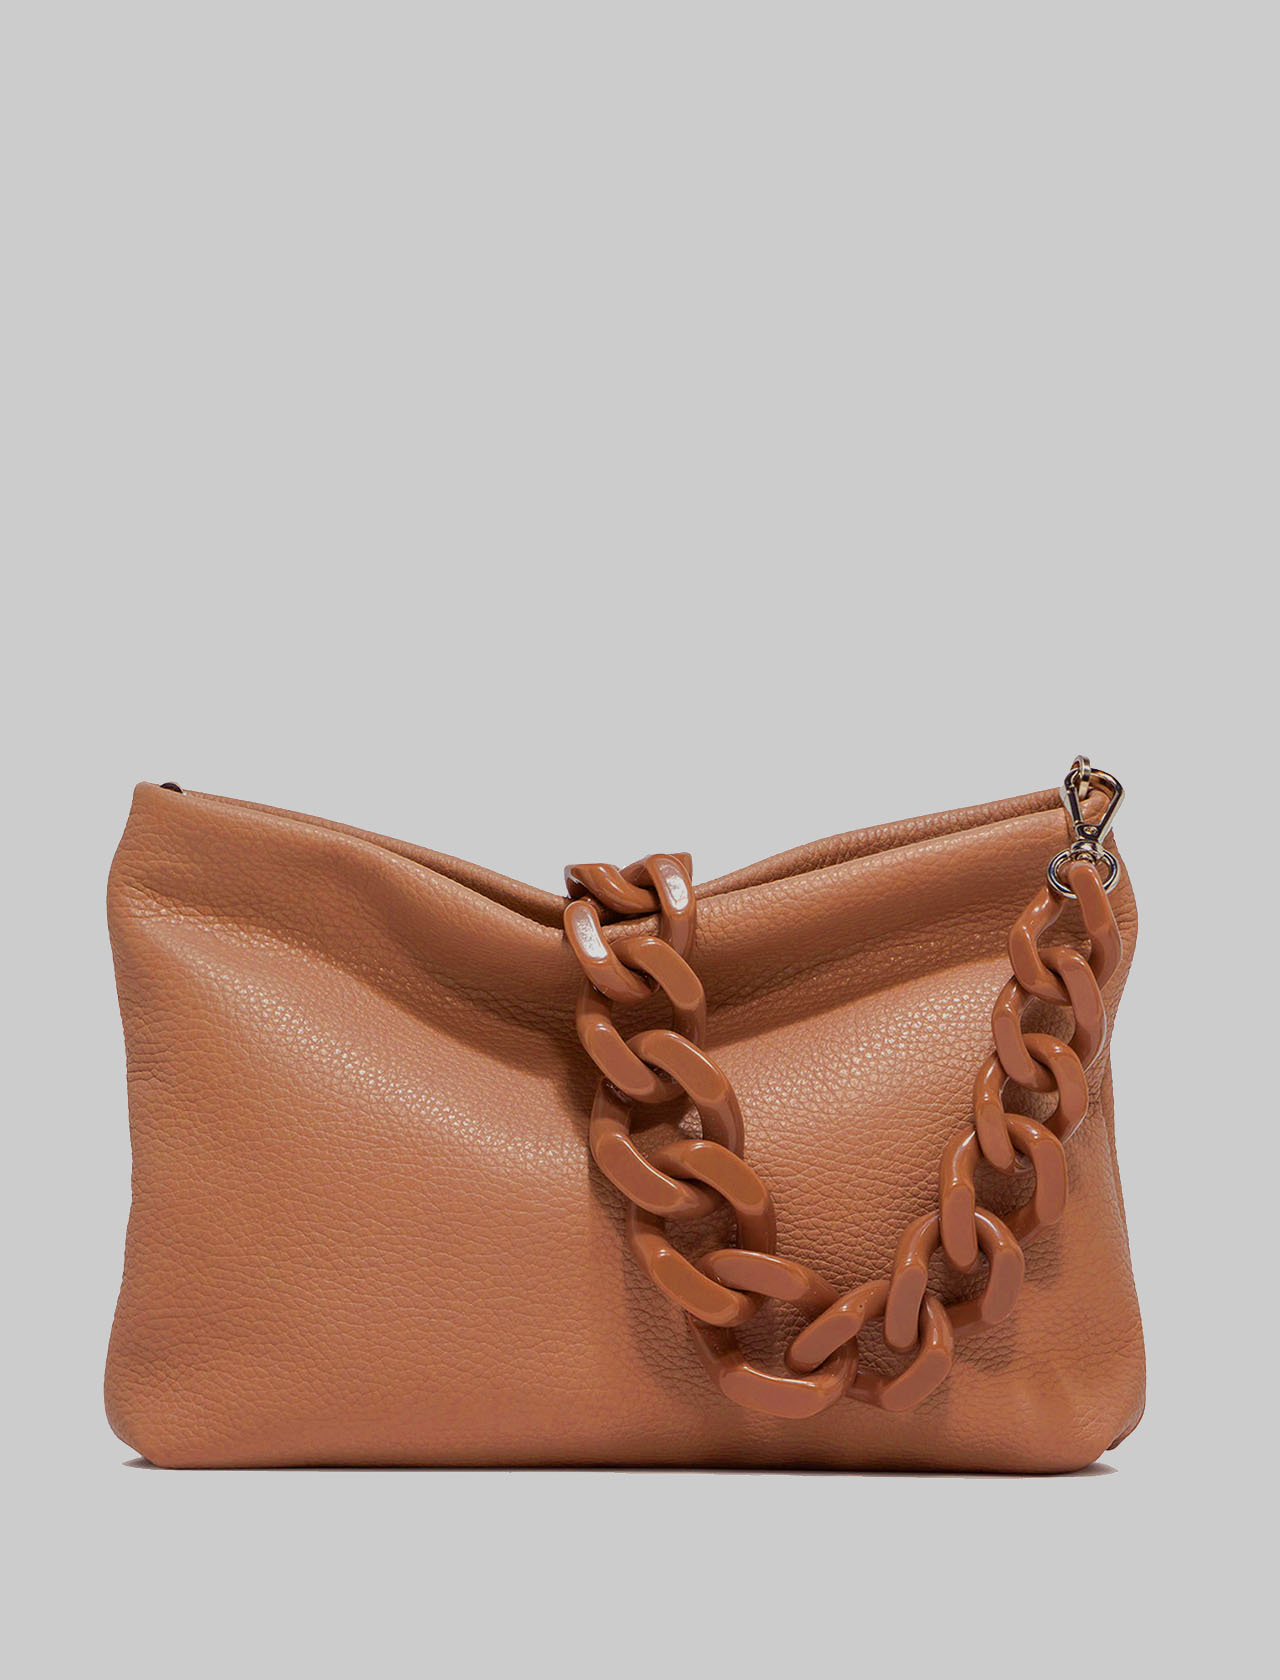 Brenda Woman Shoulder Bag In Tan Leather With Matching Chain And Adjustable And Removable Shoulder Strap Gianni Chiarini | Bags and backpacks | BS826511041